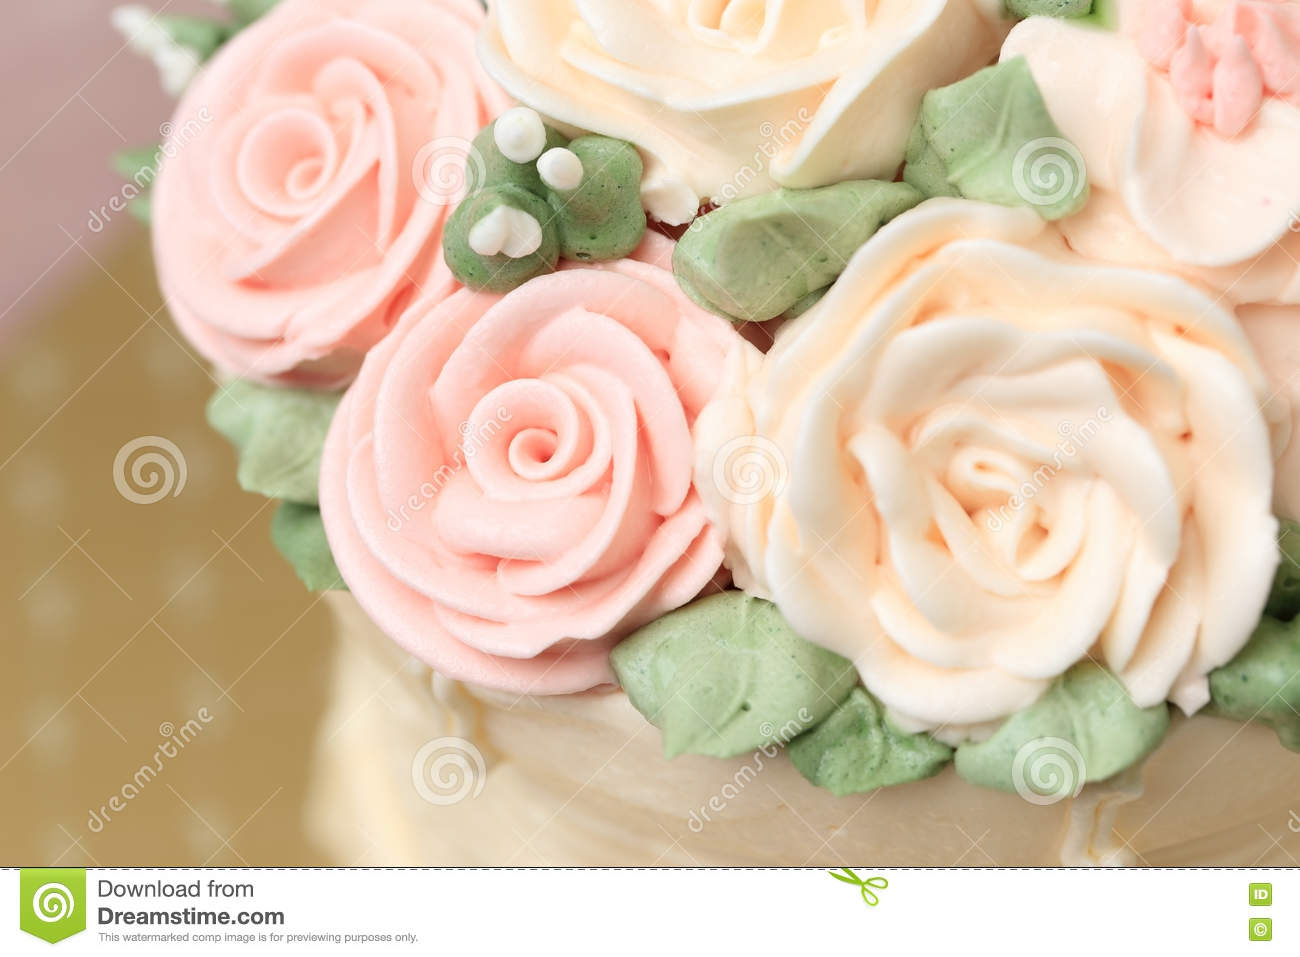 Close Up Of Wedding Or Birthday Cake Decorated With Flowers Made From Cream